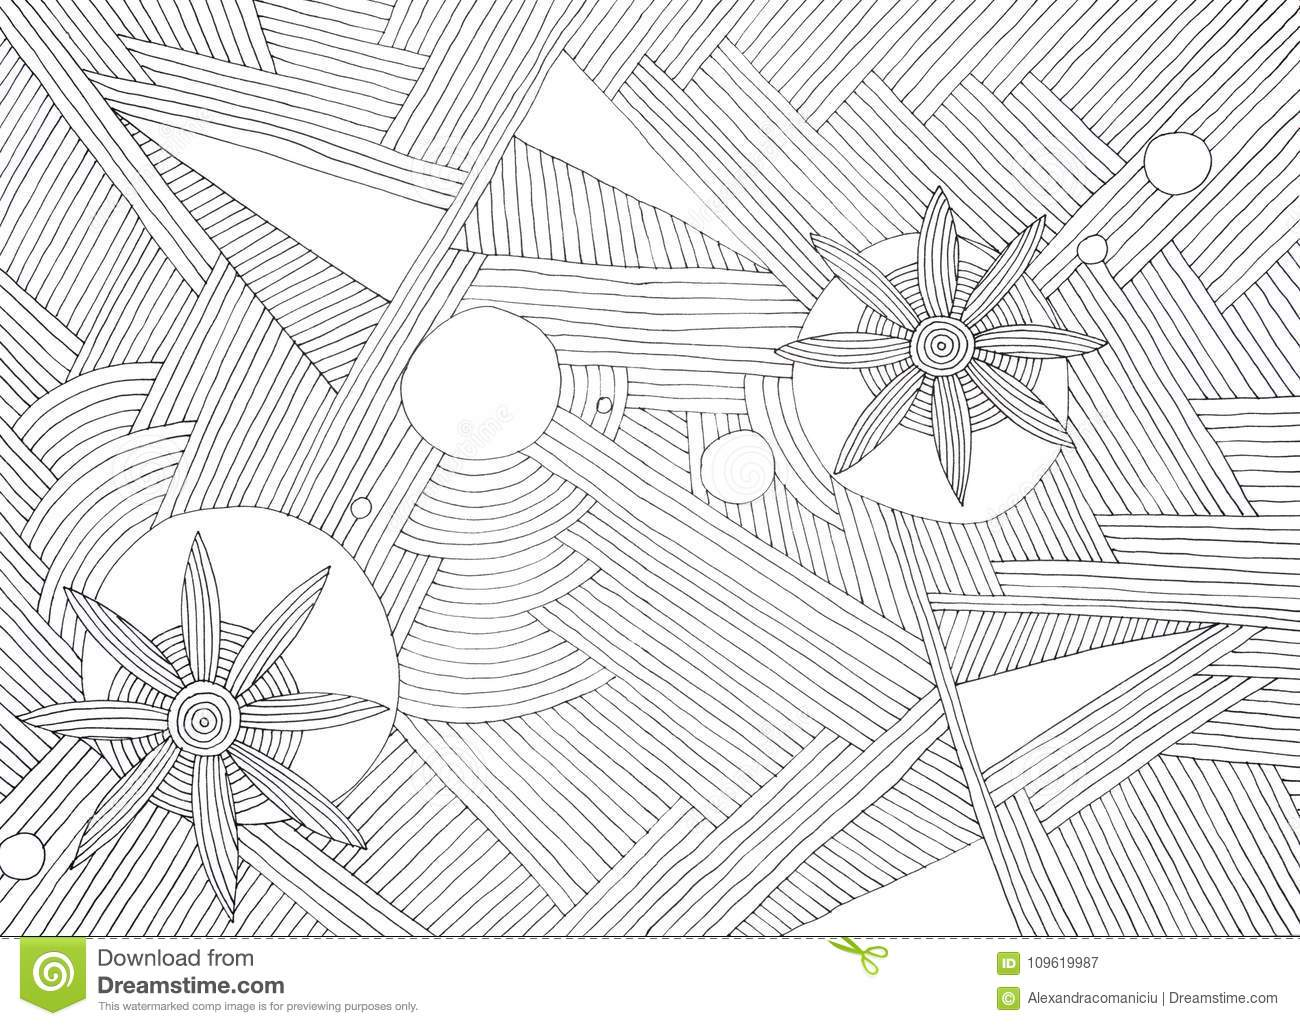 Hand Made Abstract Illustration Of Black Parallel Lines And Flower